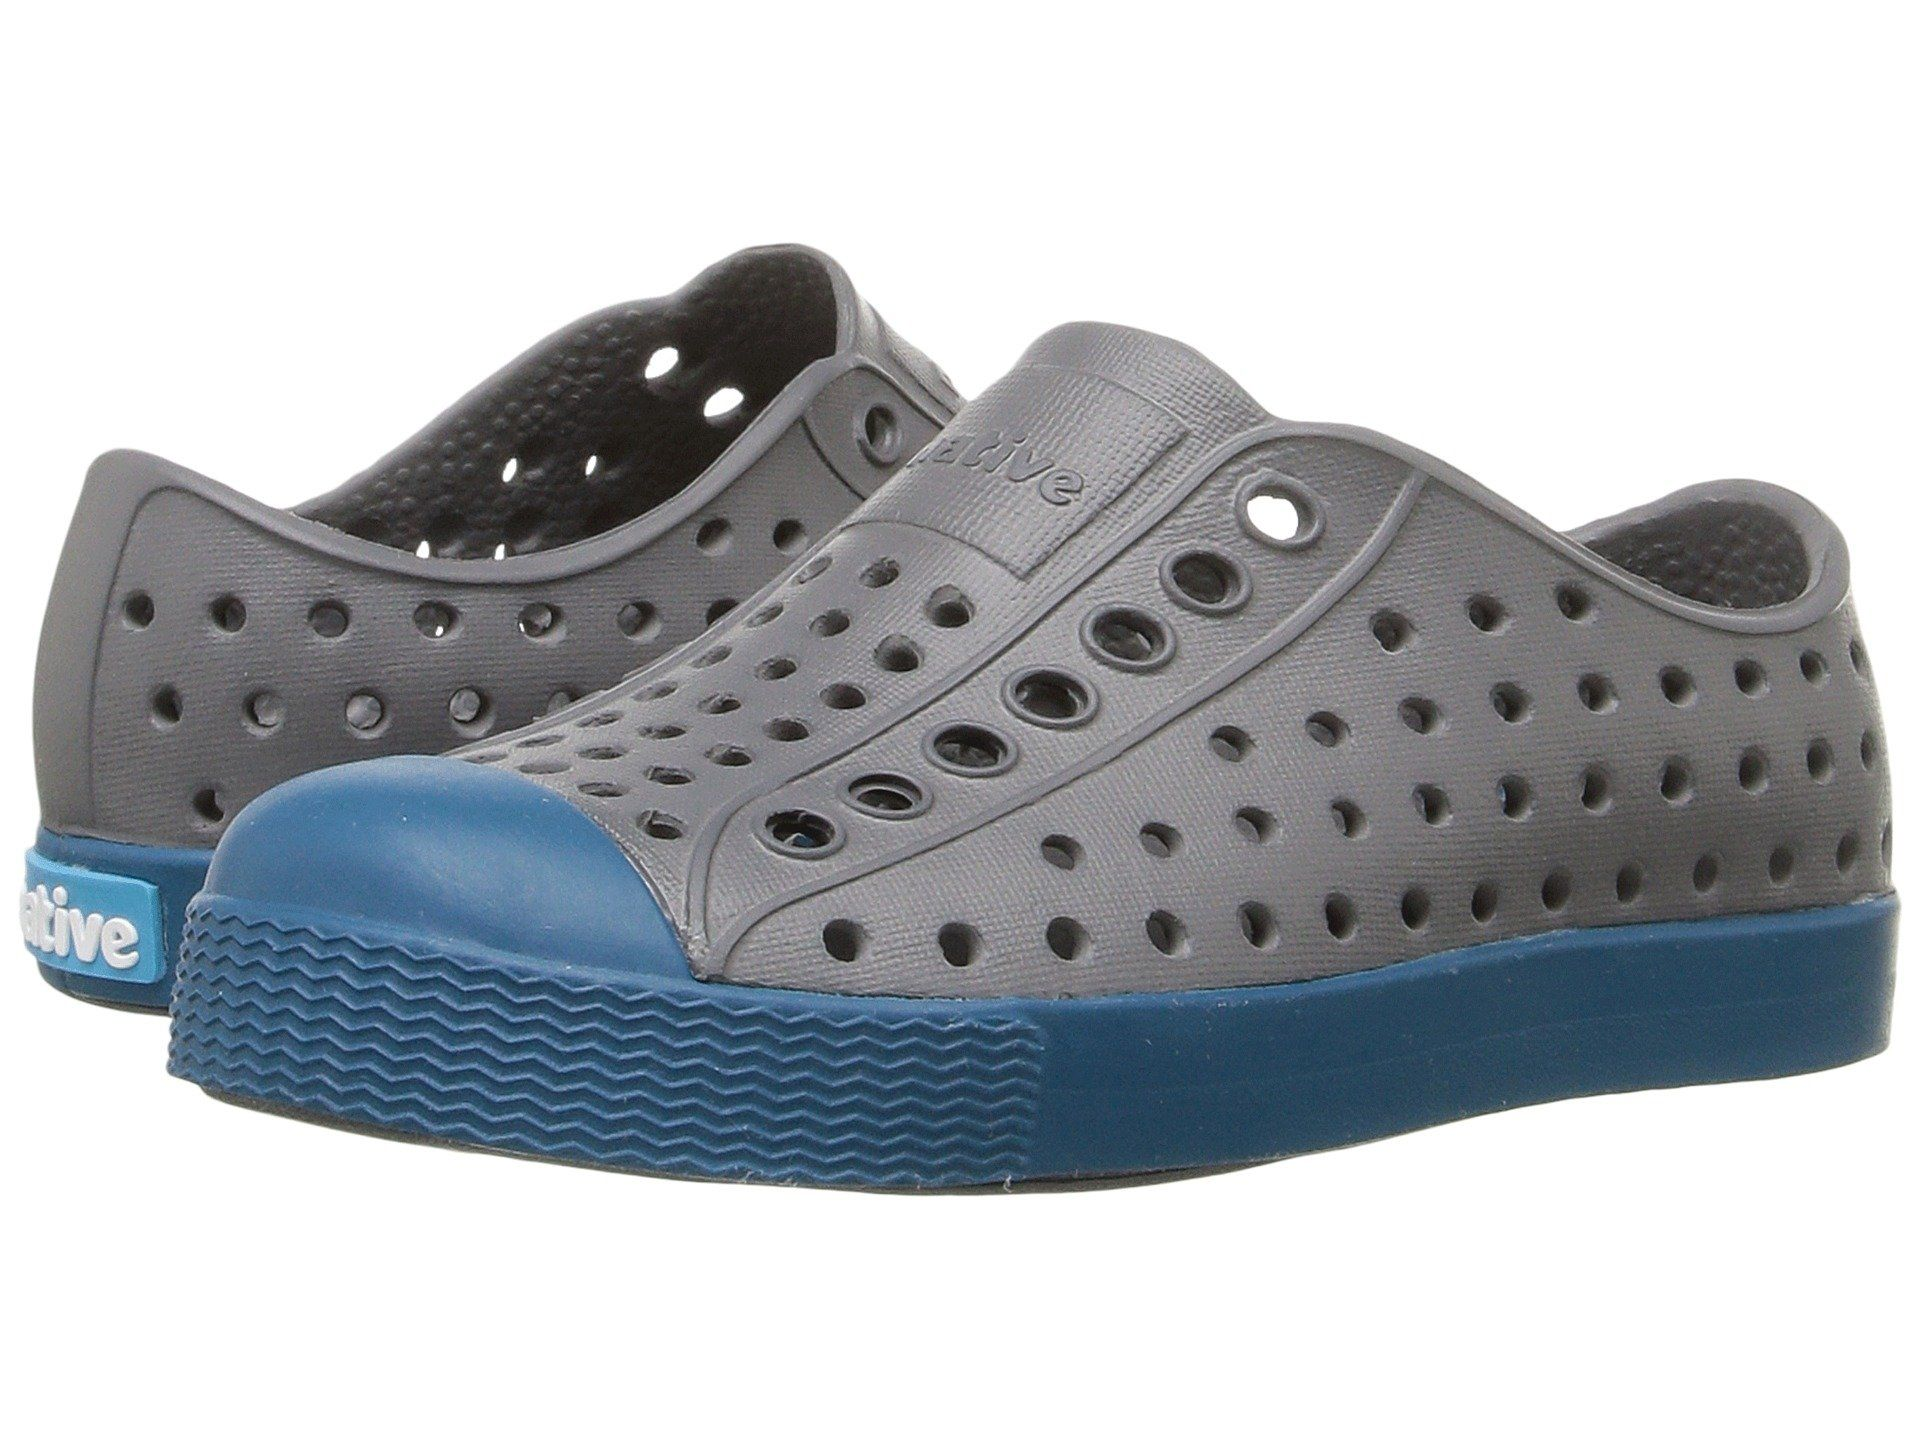 351aada8249a2 Native shoes Jefferson dublin grey/trench blue | Products | Shoes ...